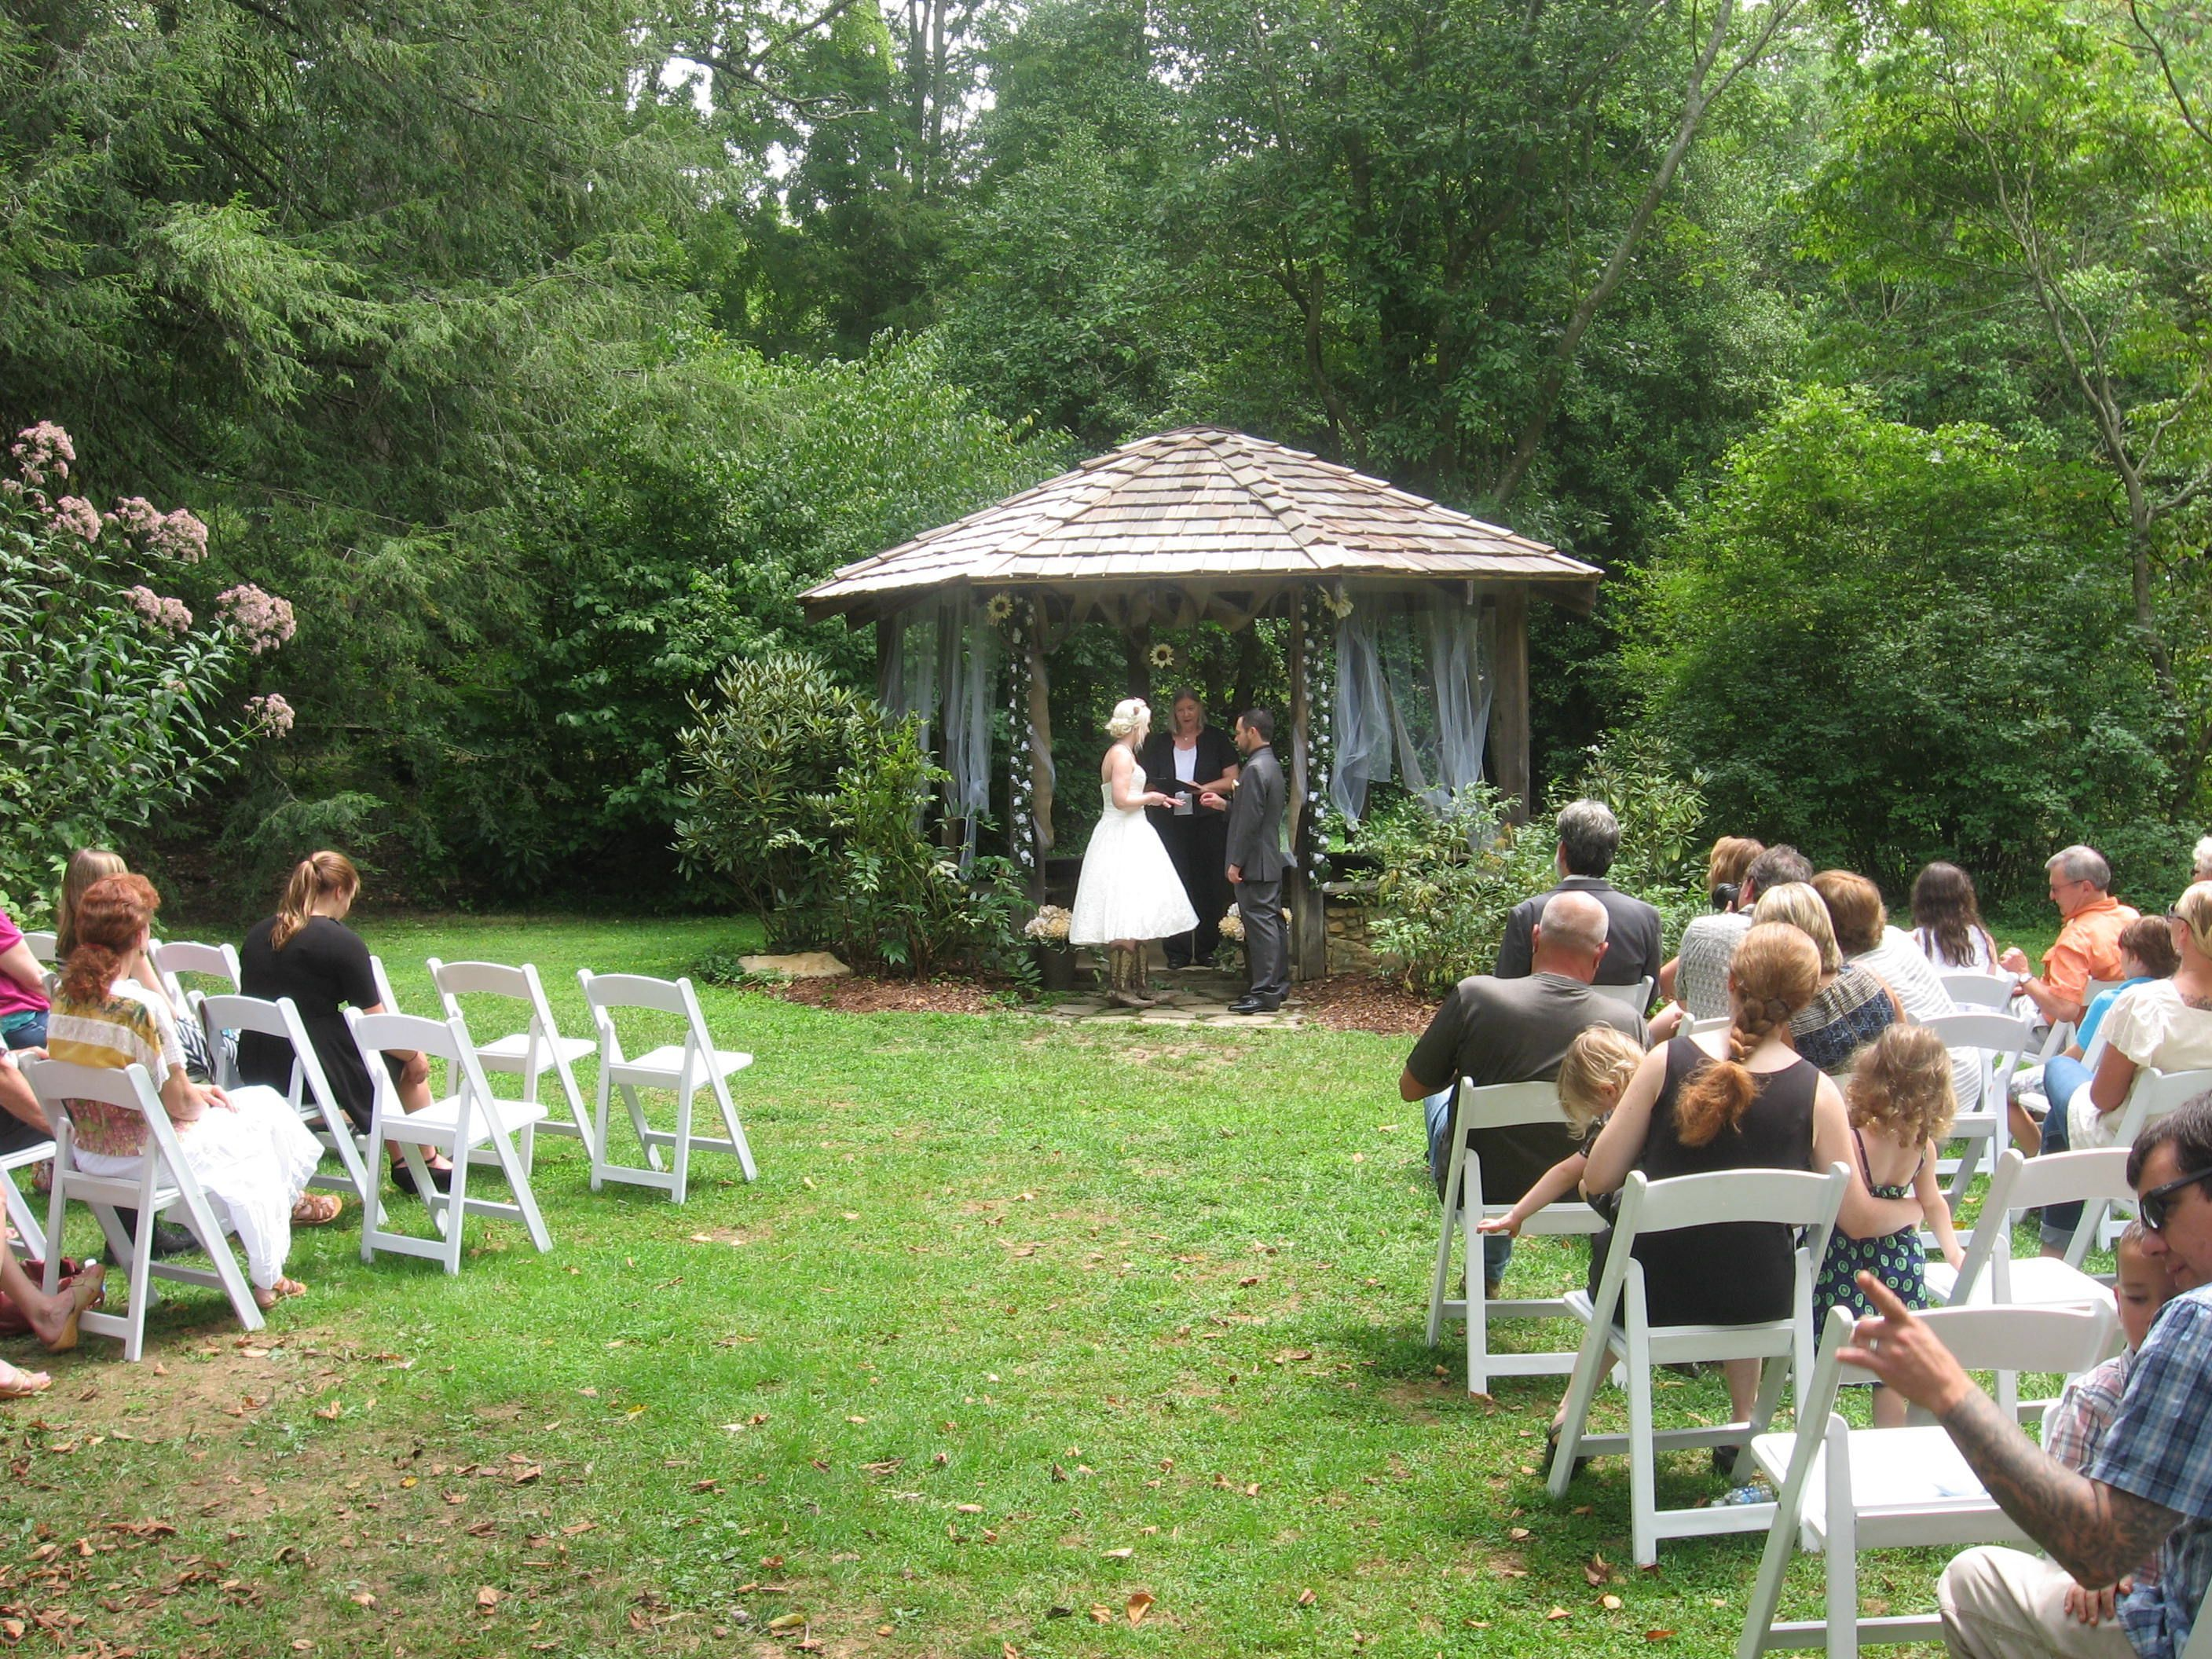 A summer wedding in the gazebo at the asheville botanical gardens a summer wedding in the gazebo at the asheville botanical gardens this is a beautiful junglespirit Image collections